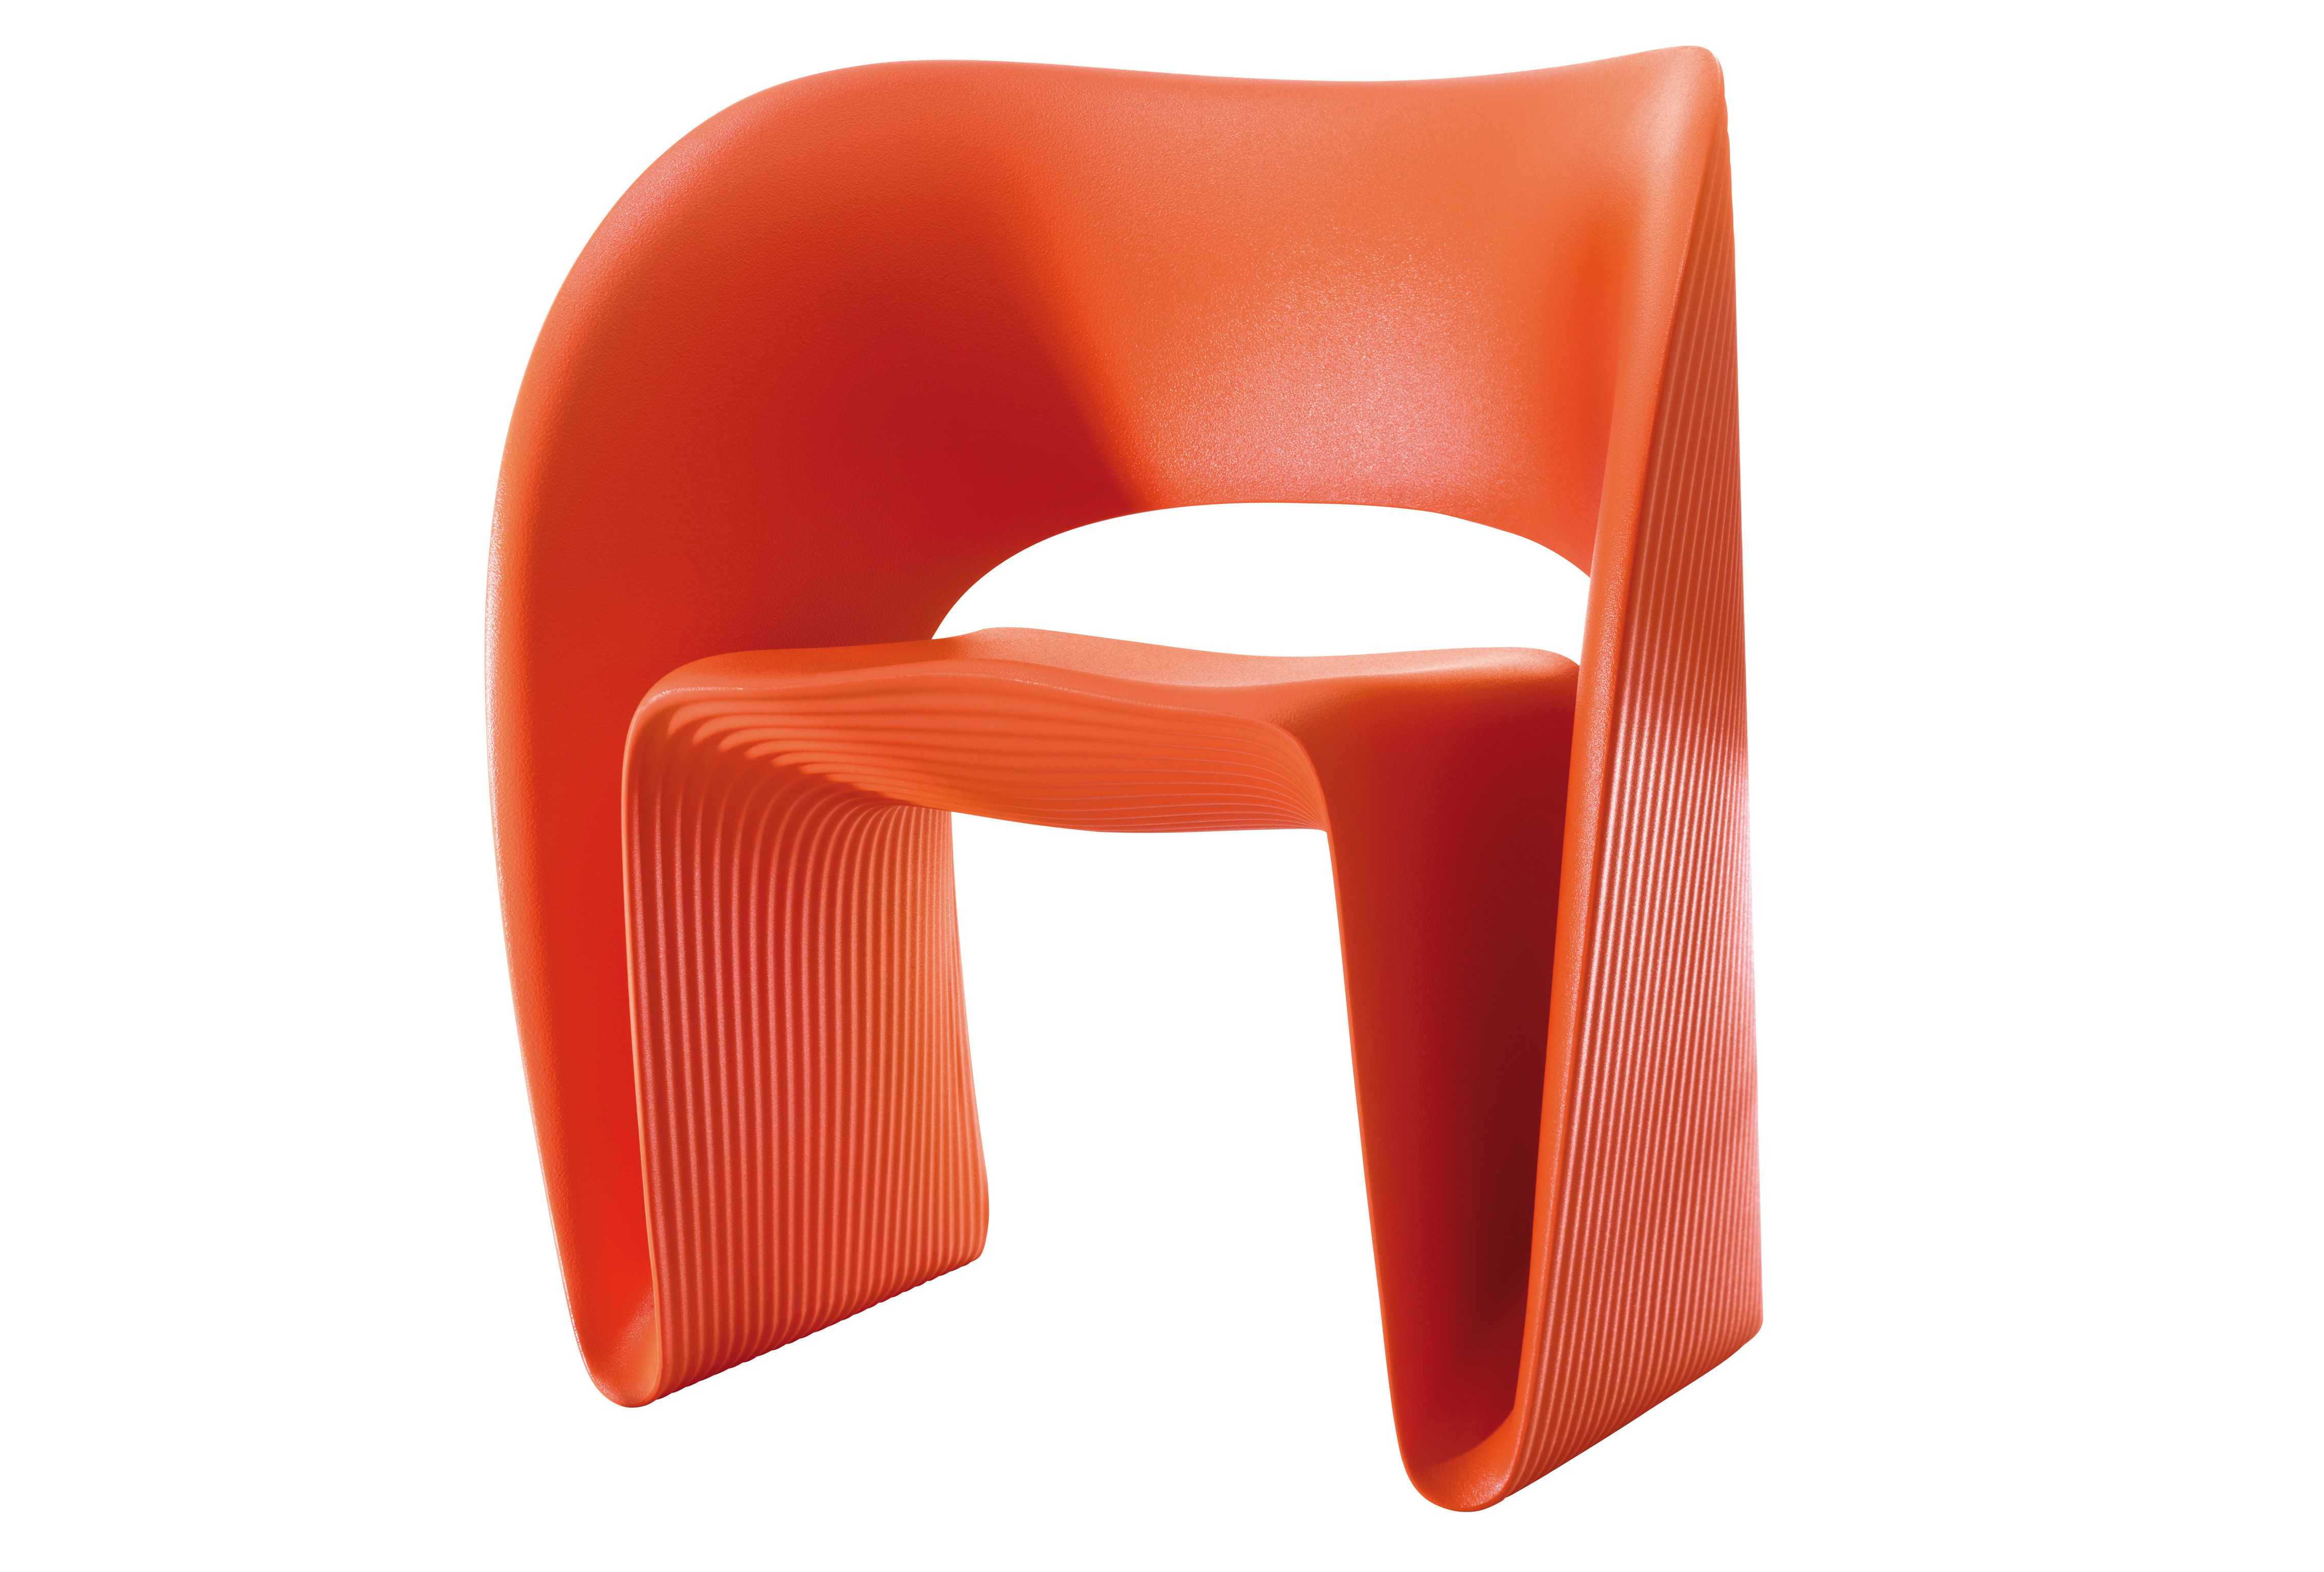 Furniture - Chairs - Raviolo Armchair - Plastic by Magis - Orange - roto-moulded polyhene